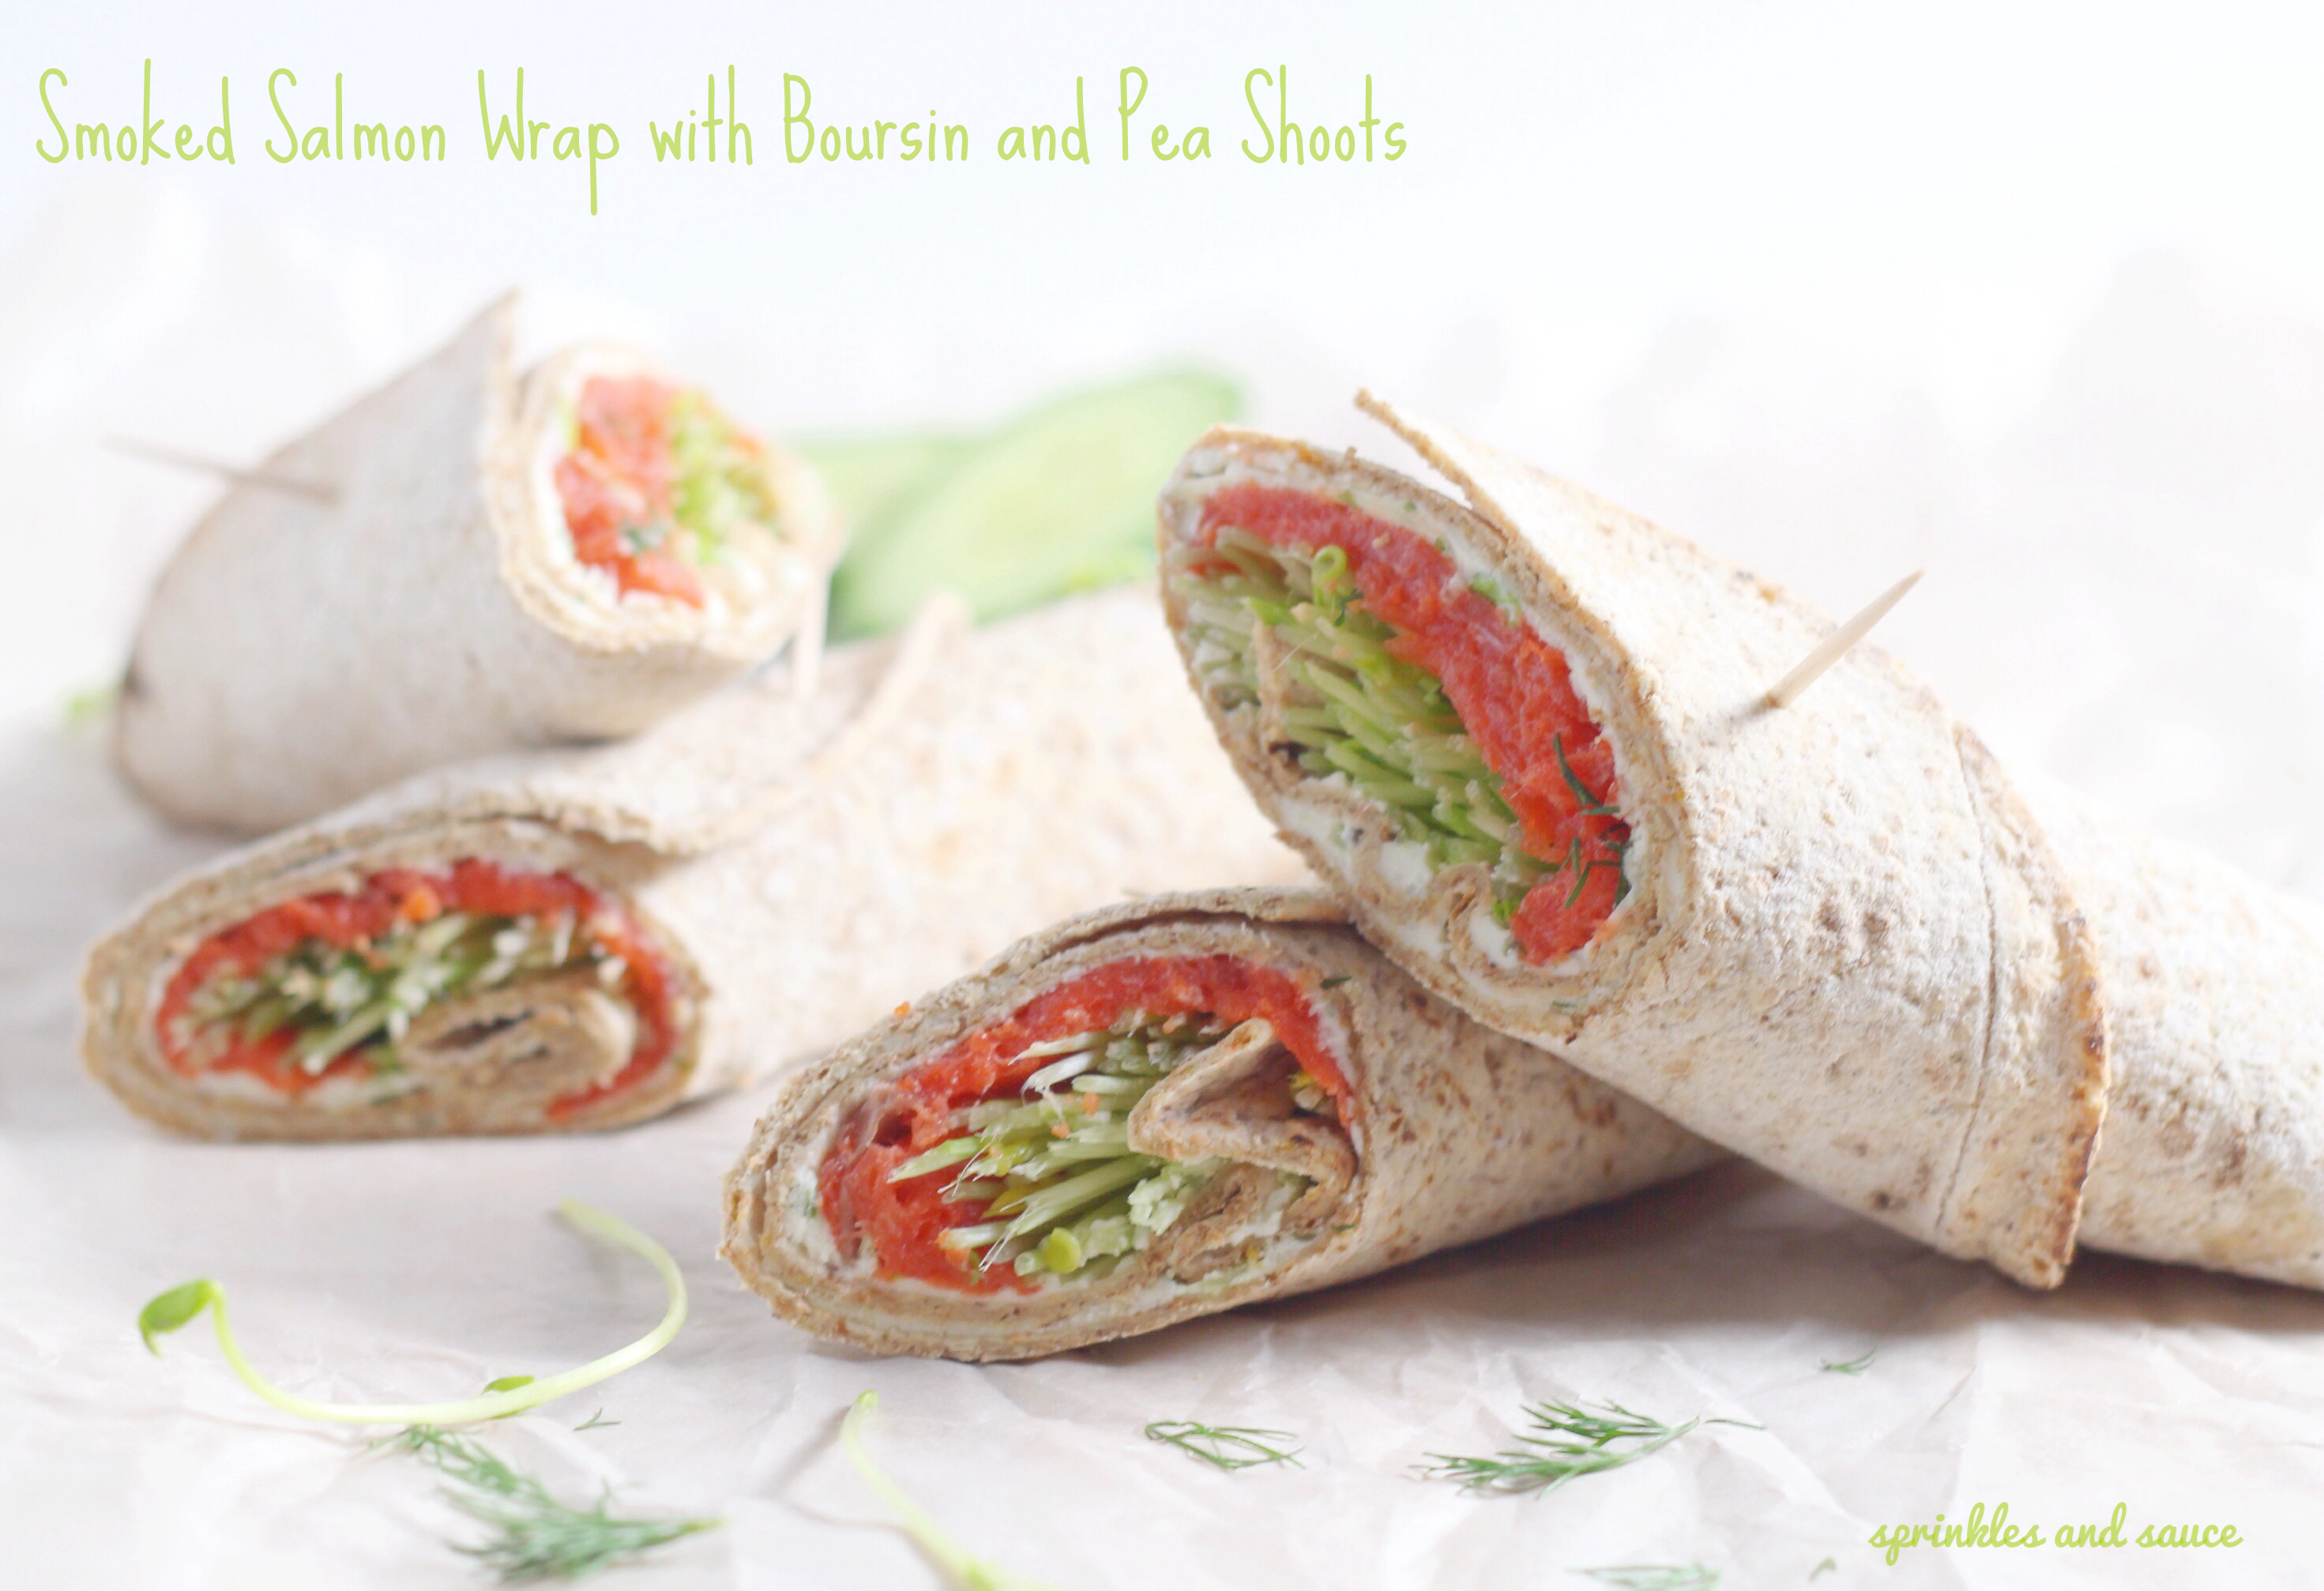 Smoked Salmon Wrap with Boursin and Pea Shoots